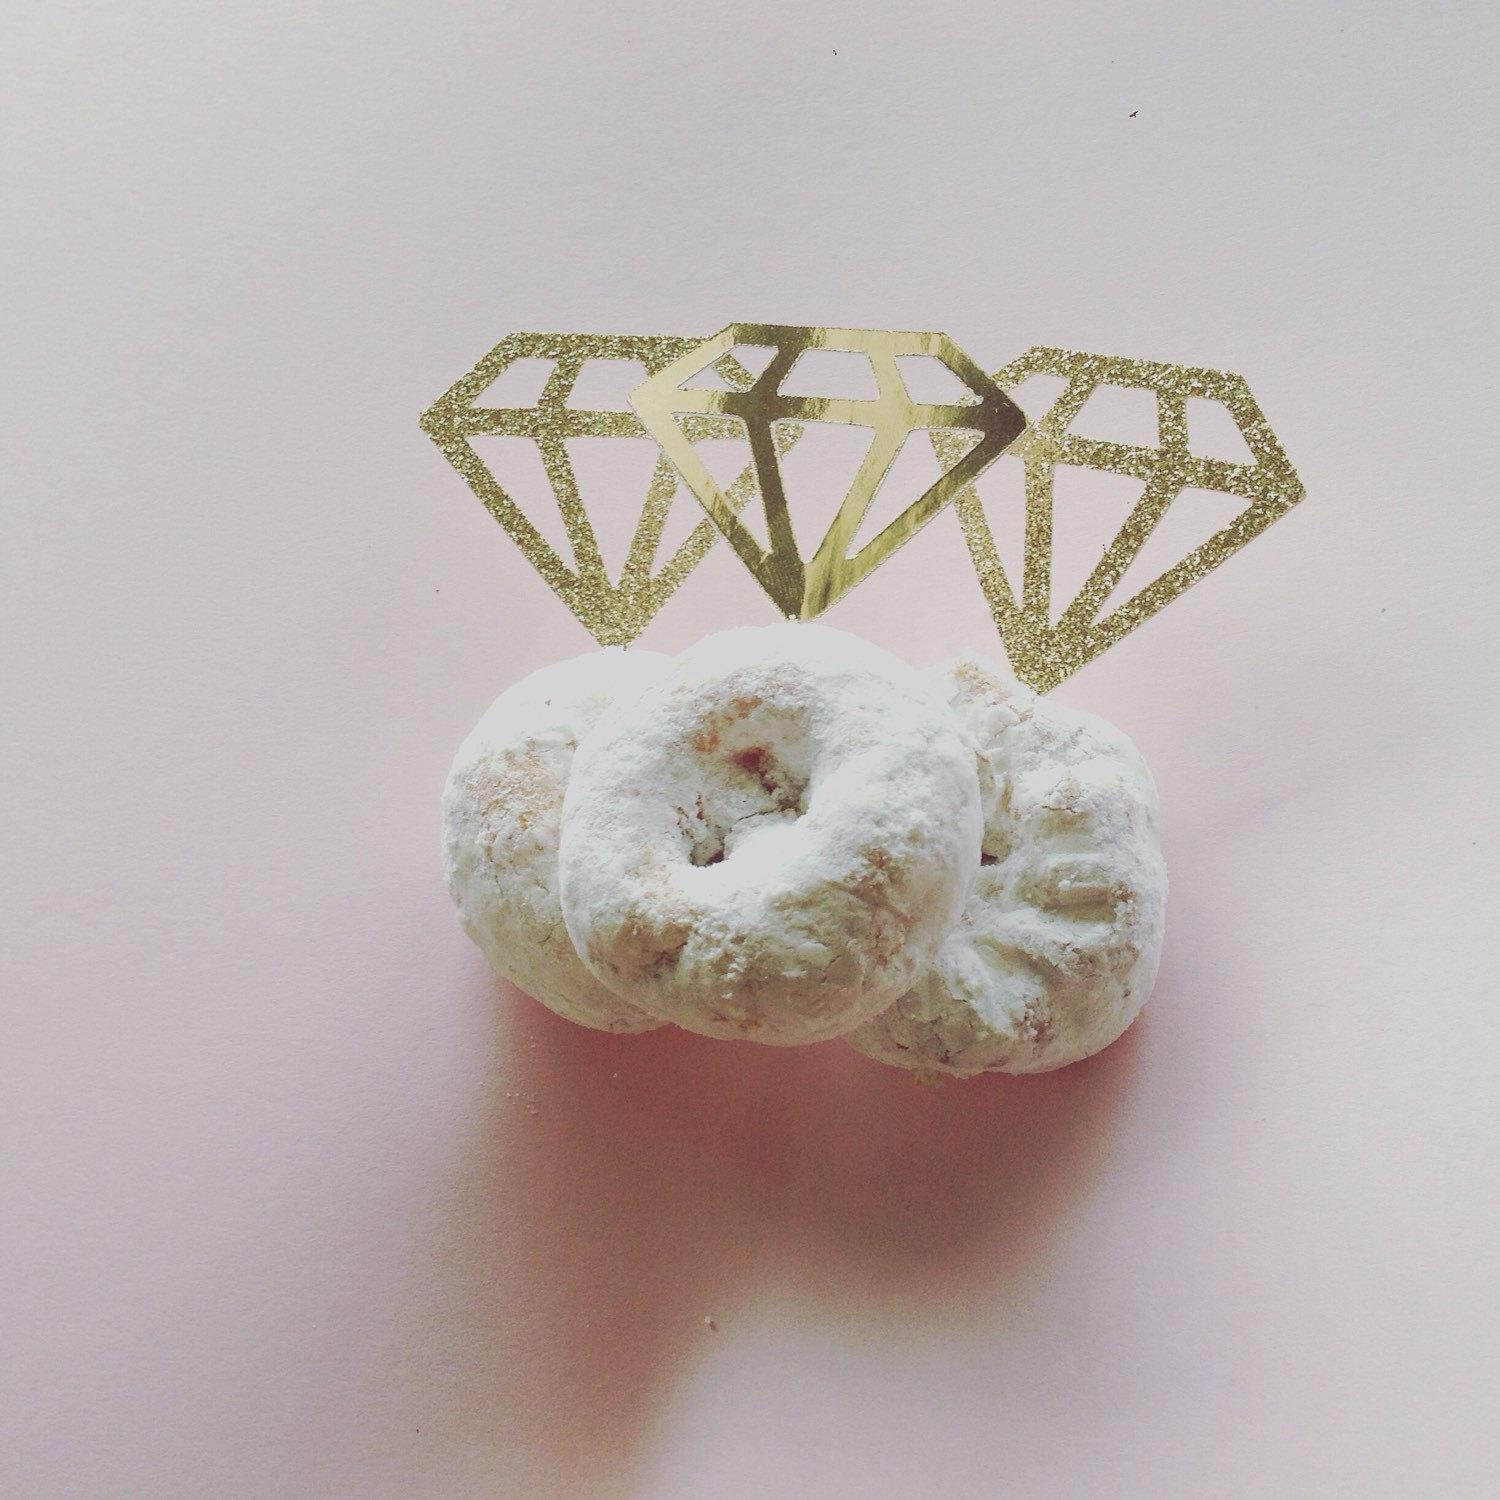 Diamond ring donut topper silver or gold glitter metallic cupcake